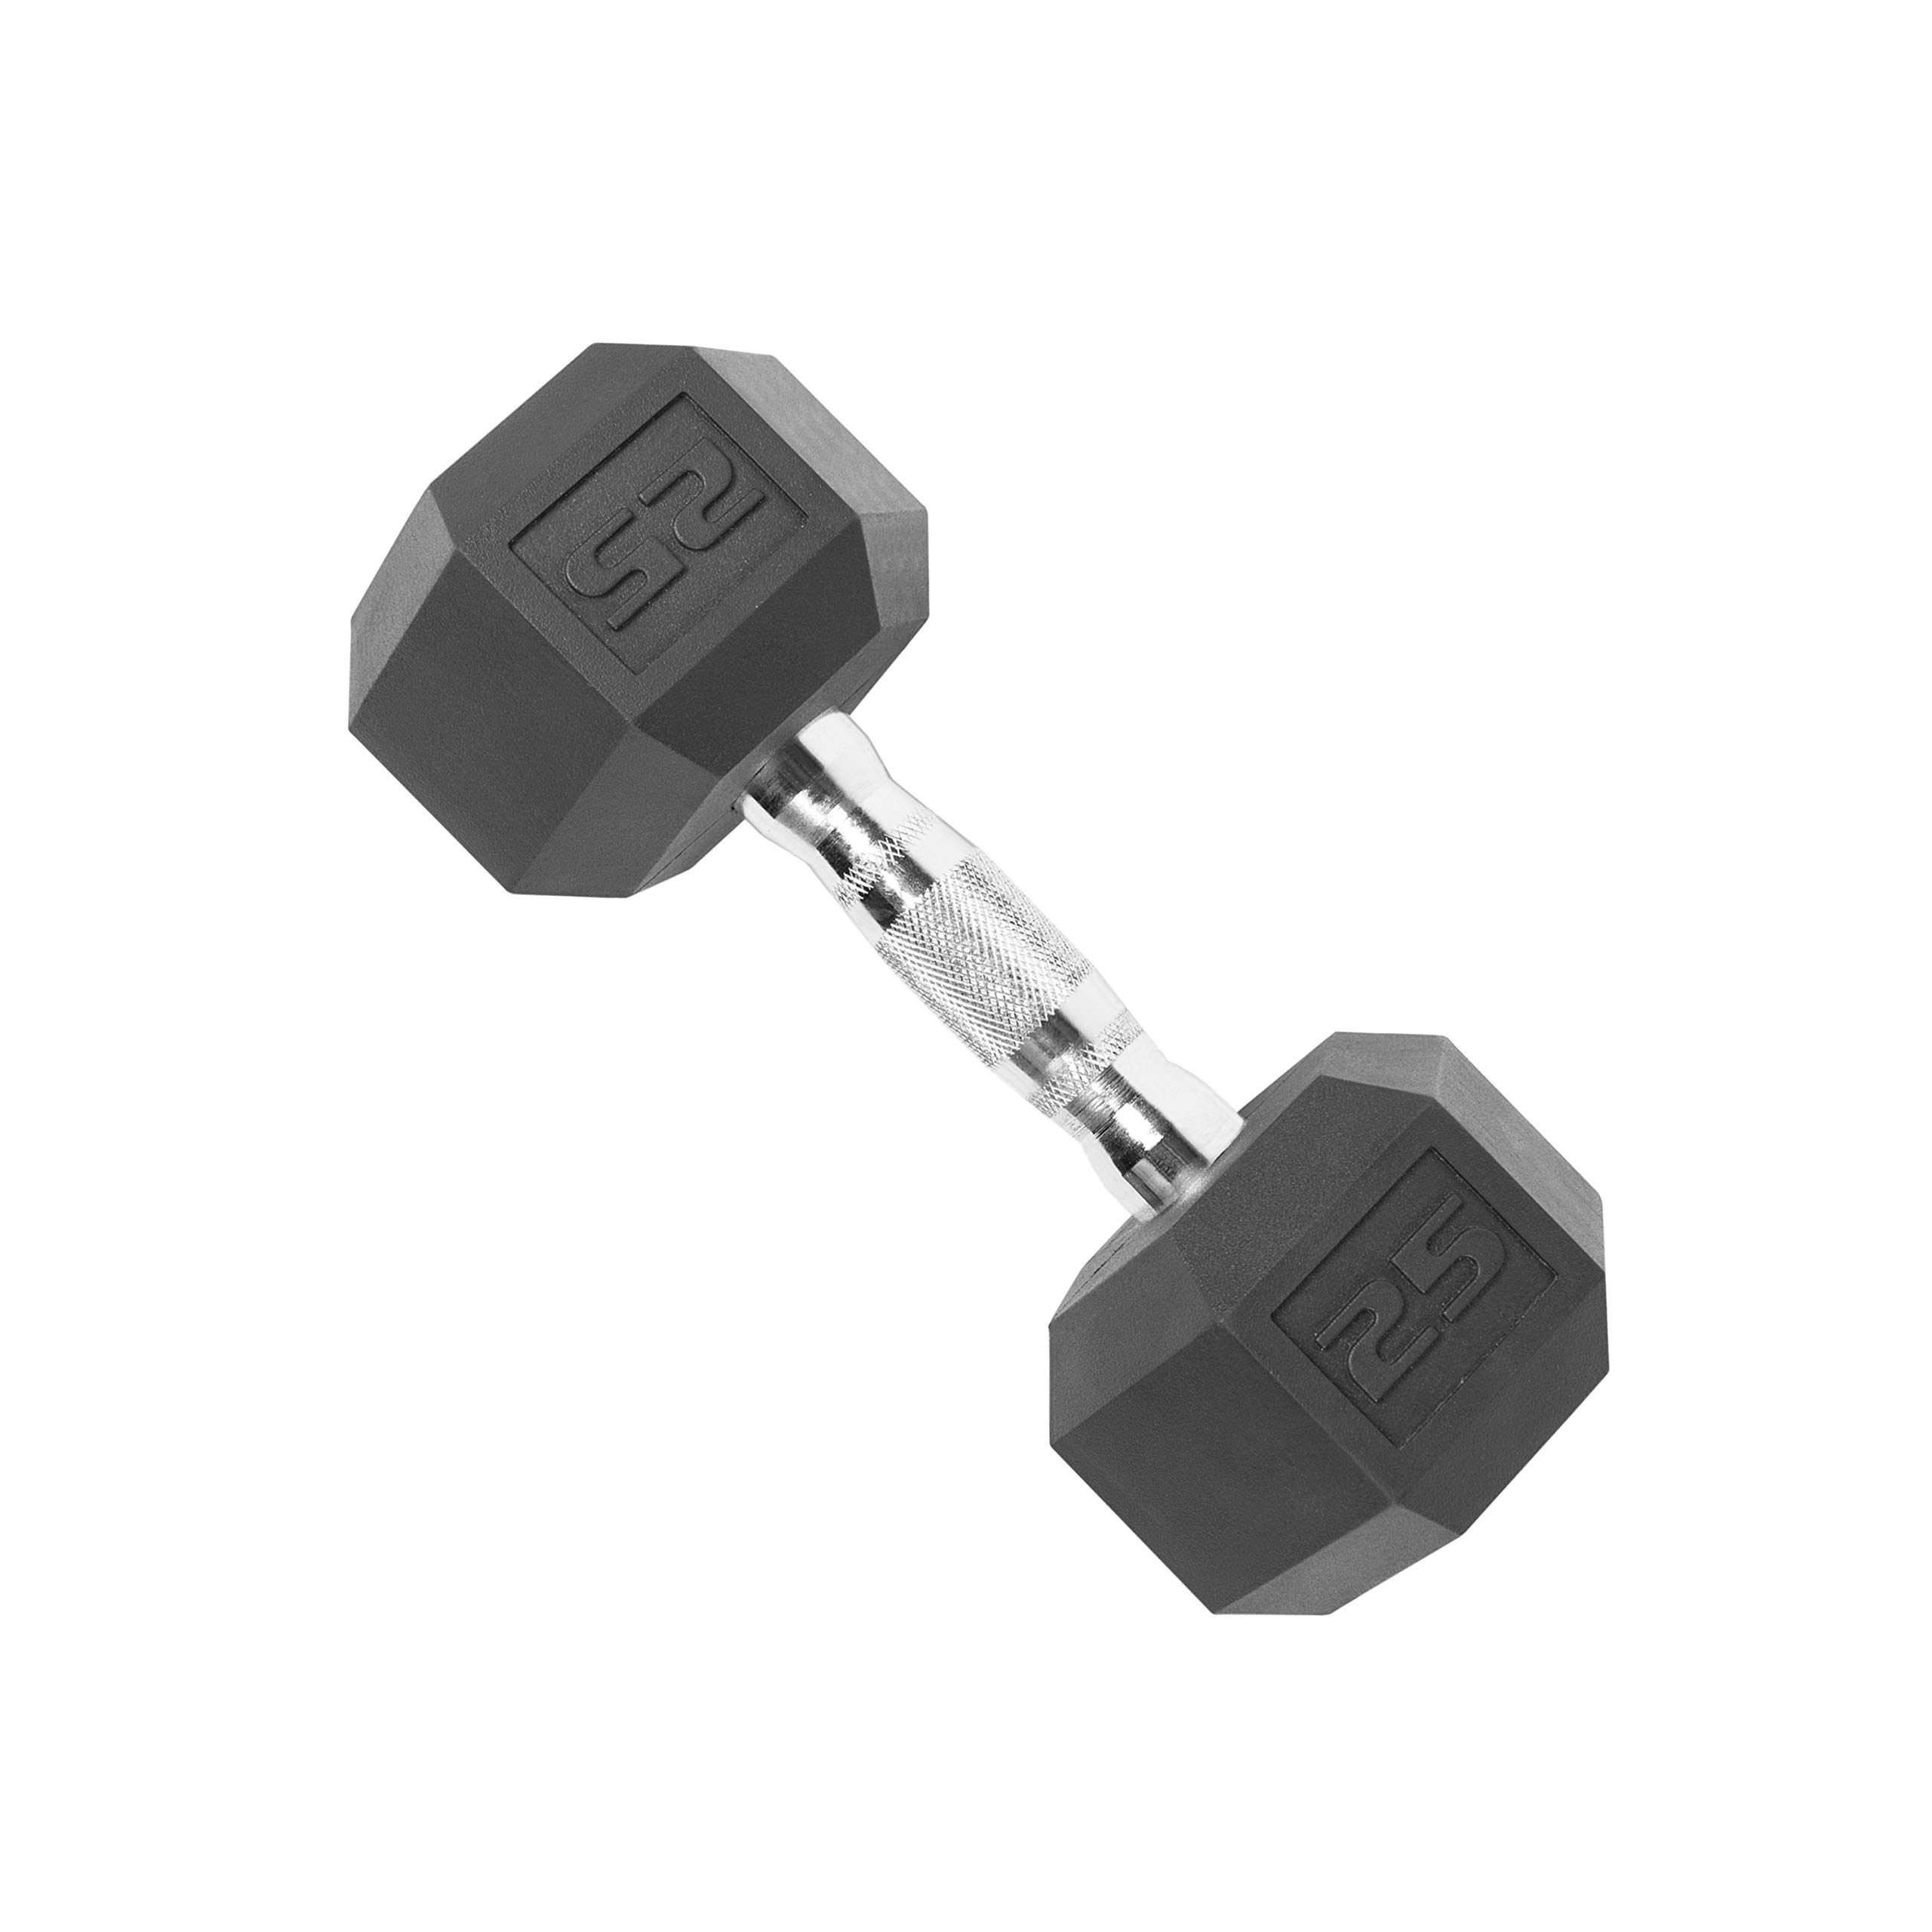 CAP Barbell SDR-025 Rubber Coated Hex Dumbbell with Contoured Chrome Handle (25-Pound), Black